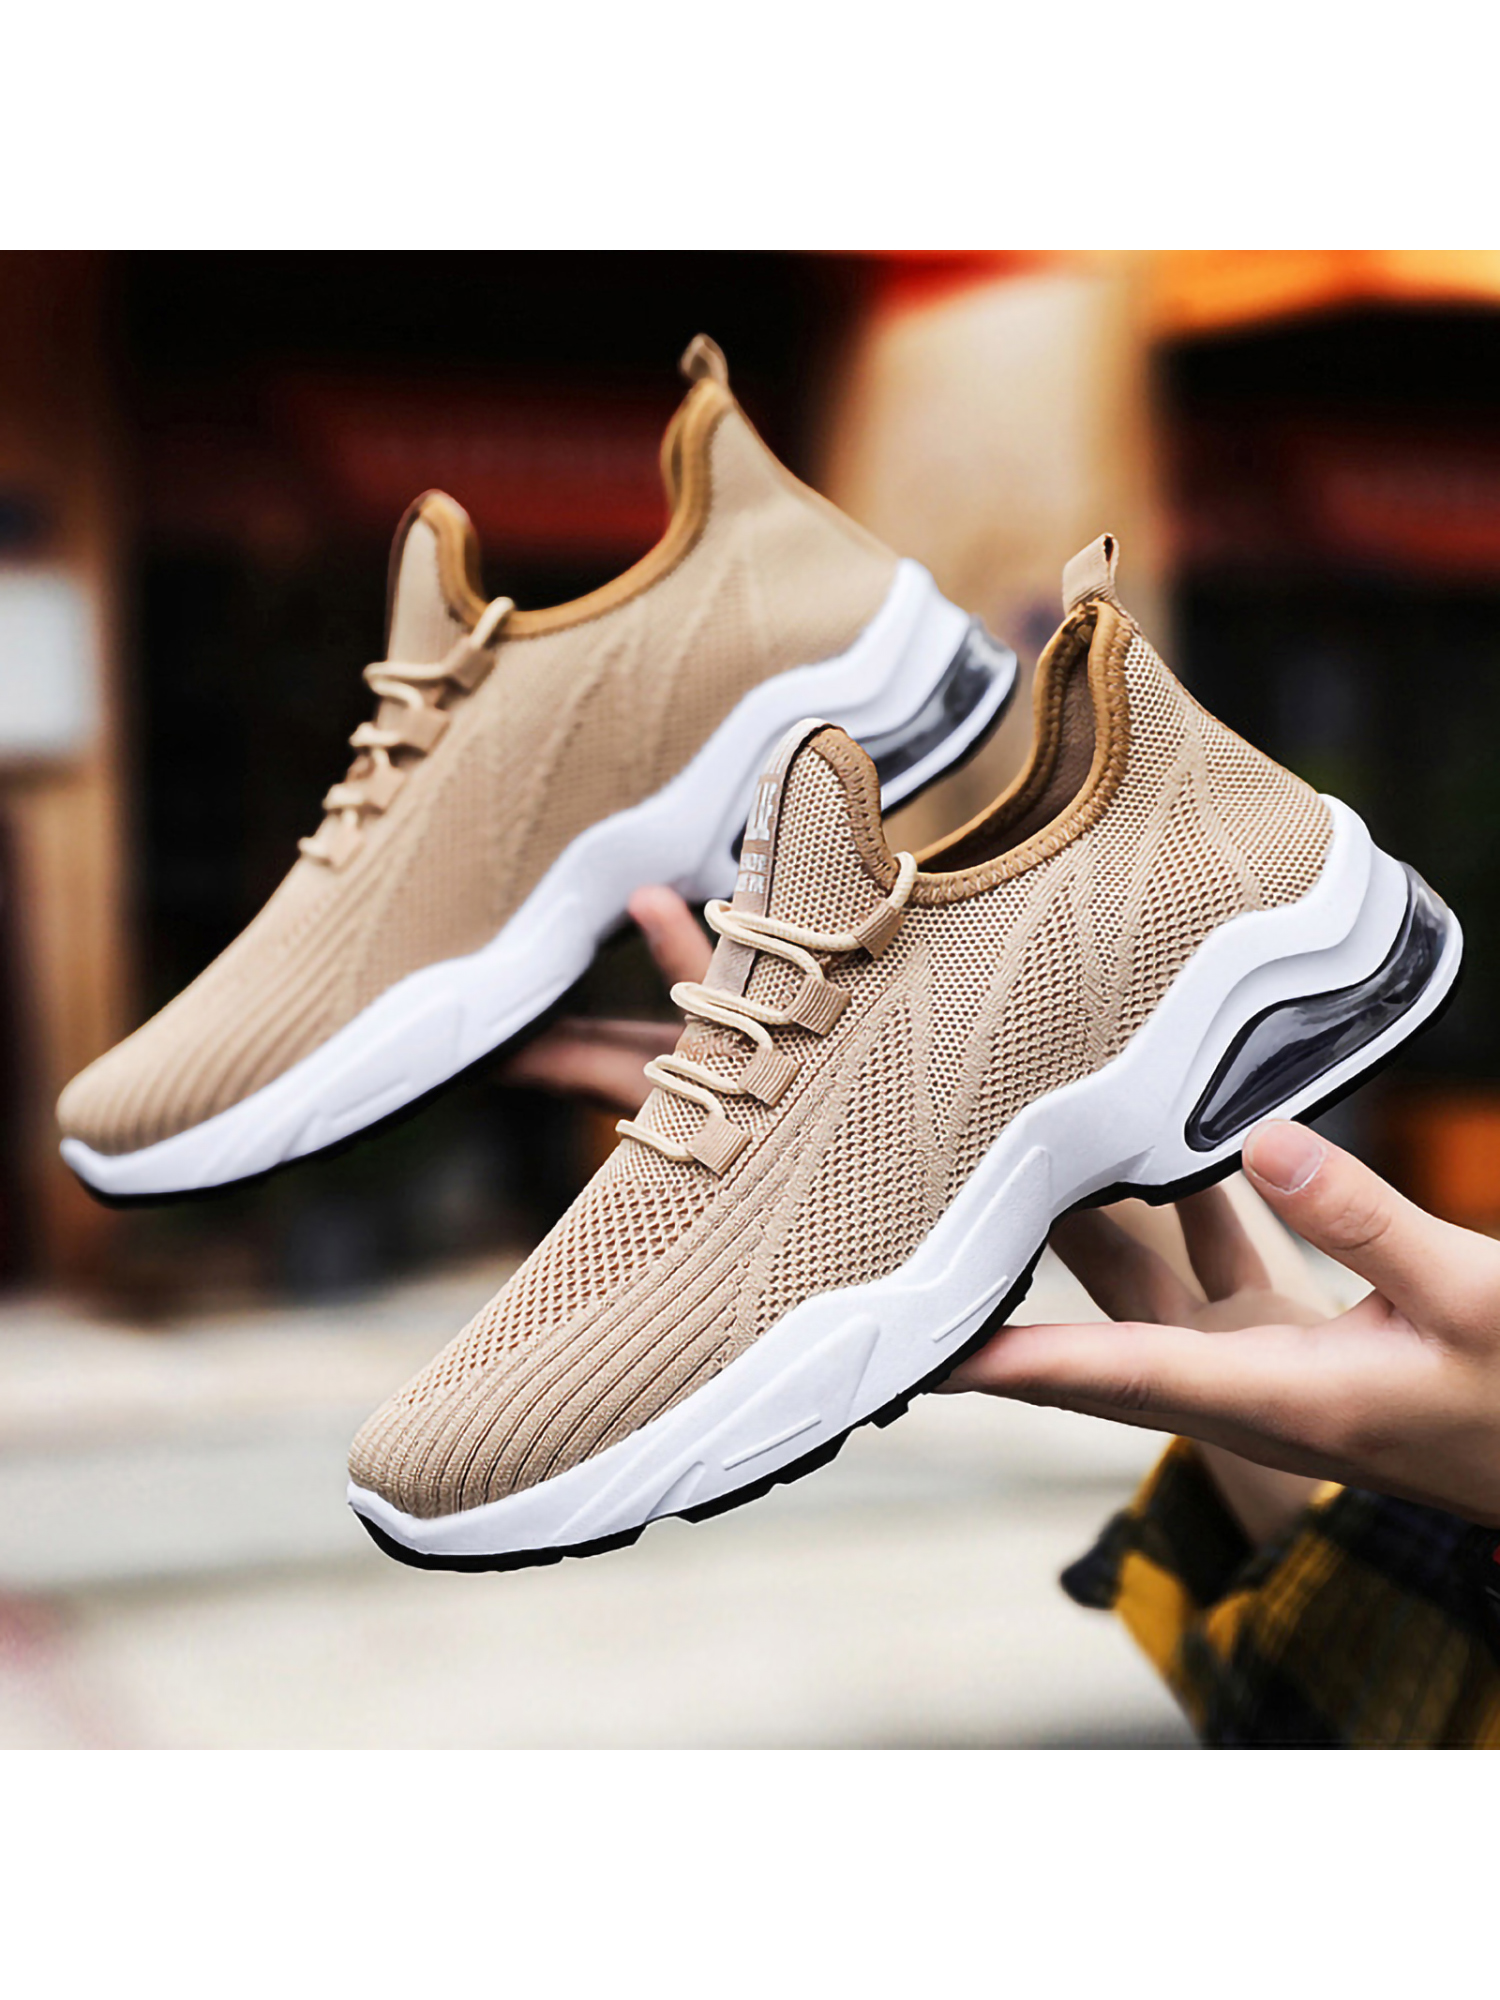 Mens Air Cushion Running Sneakers Casual Athletic Tennis Shoes Breathable Walk